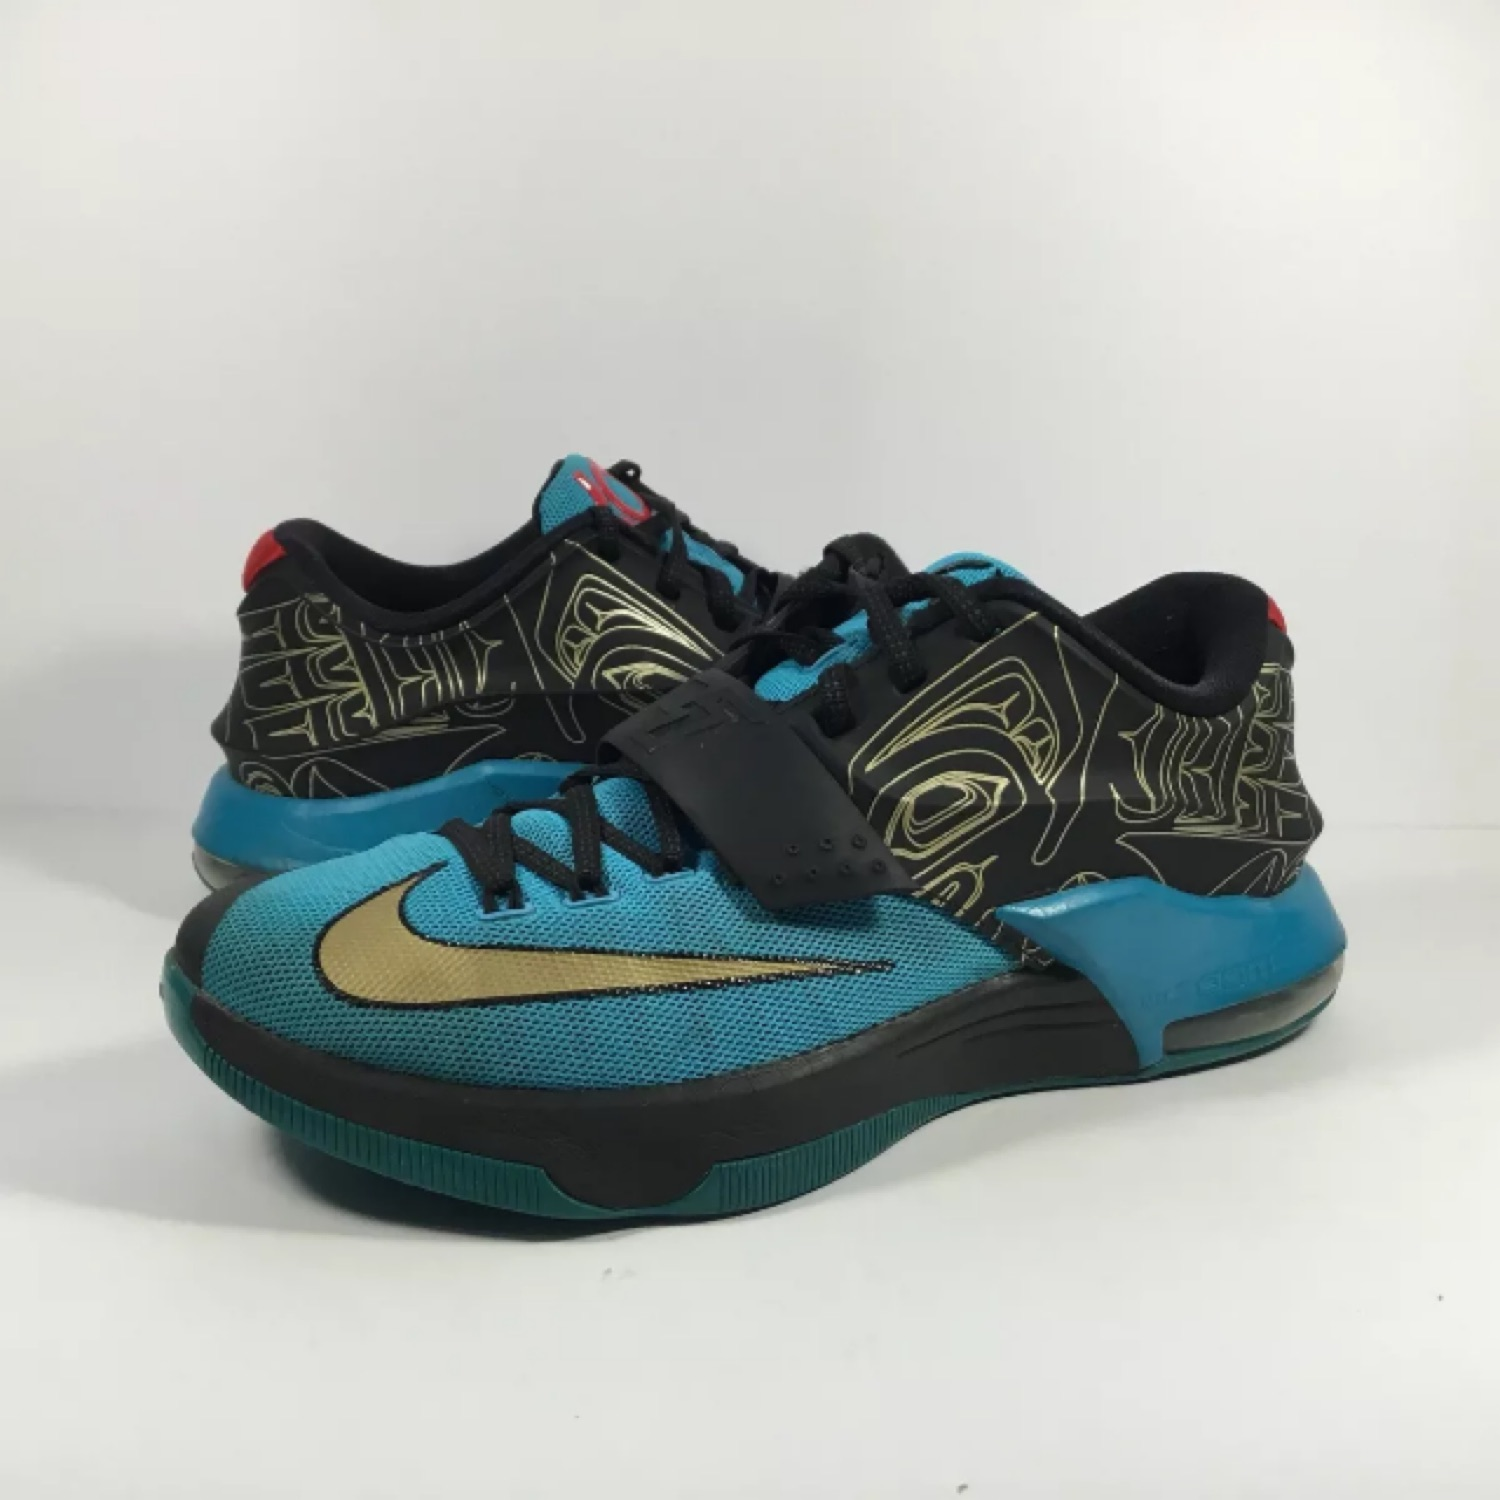 separation shoes e02bd 51ca7 Nike Kd 7 Vii N7 Blue Black